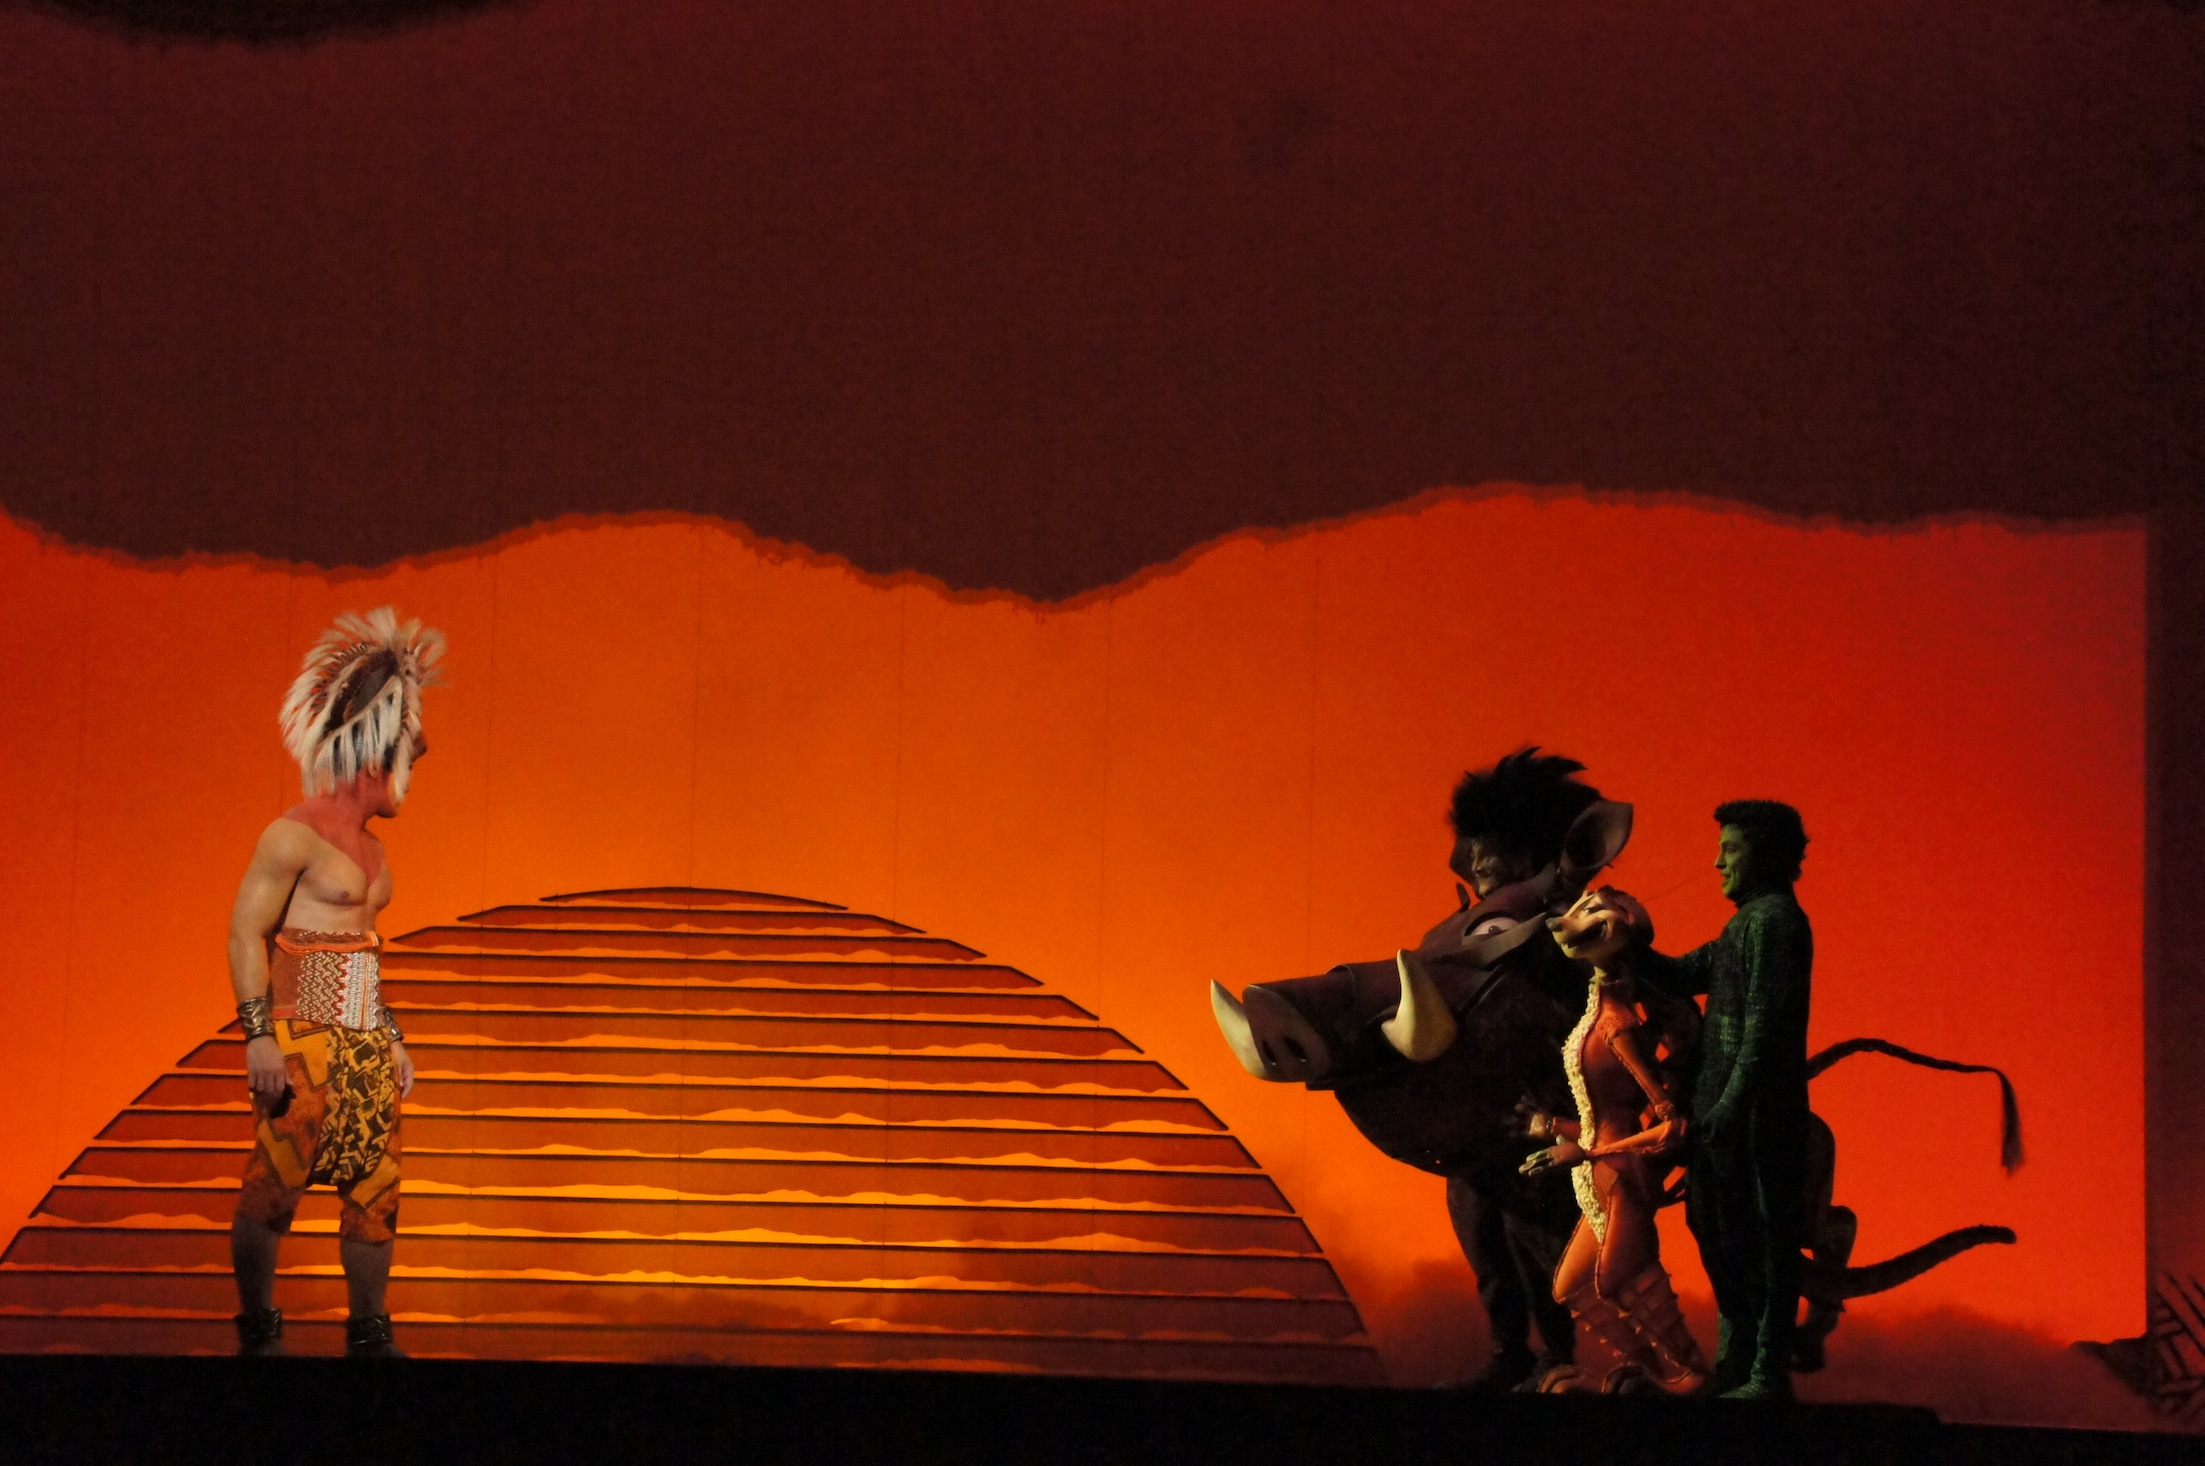 the lion king sydney sneak peek � simon parris man in chair